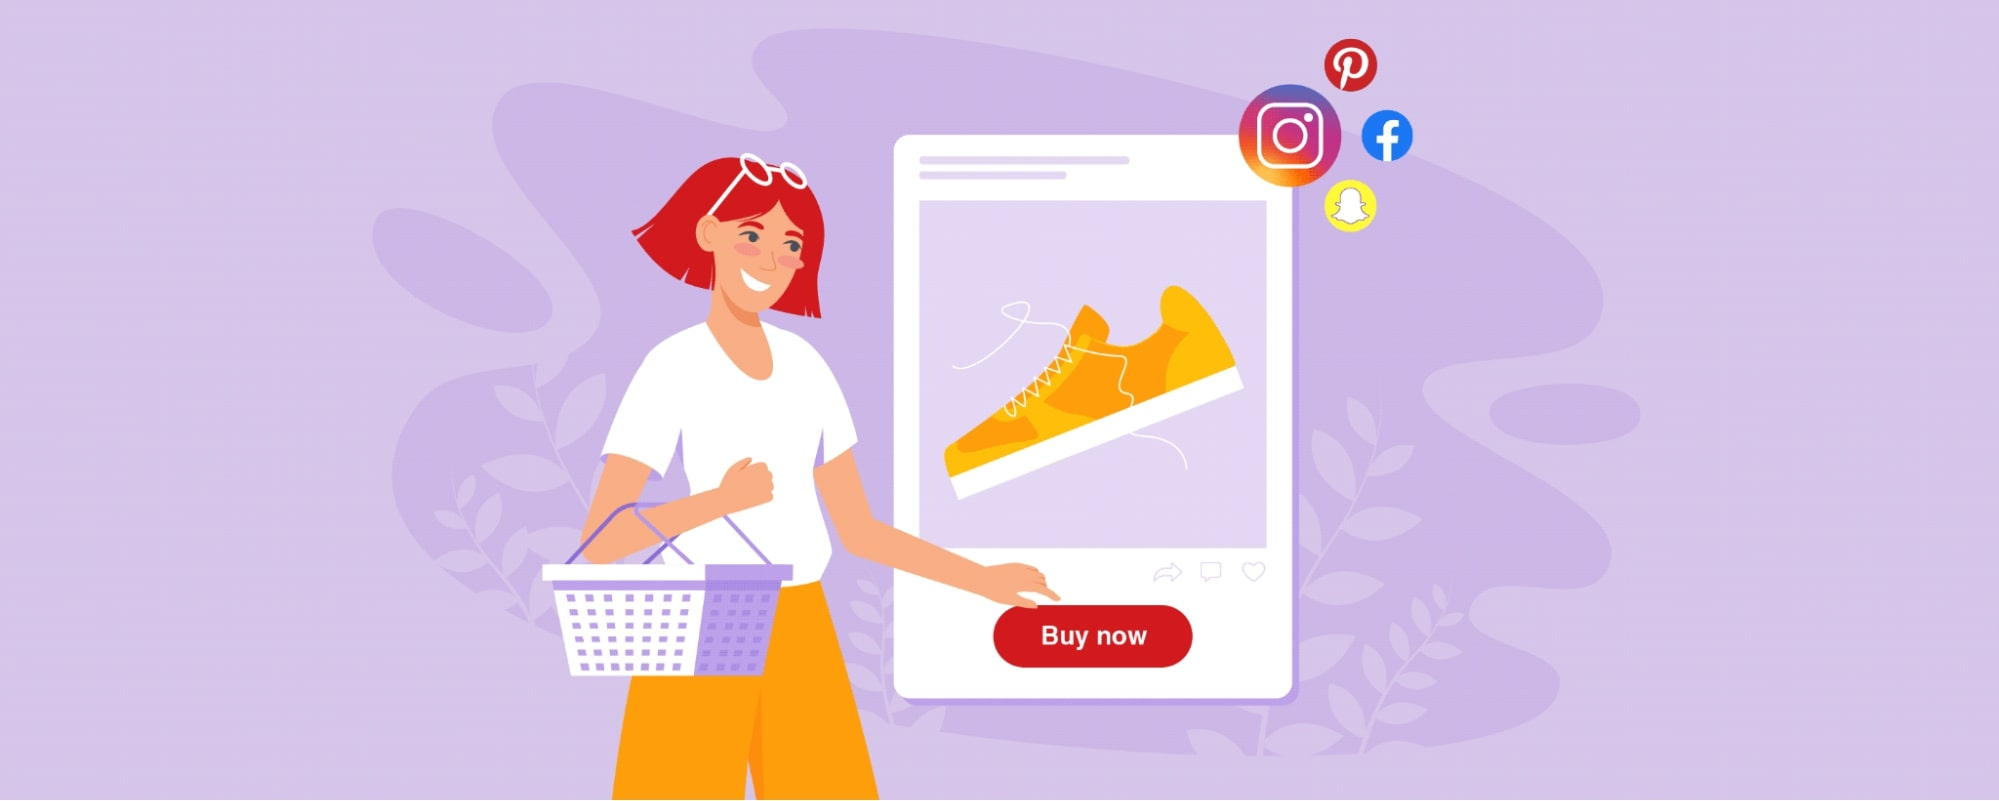 Use your social media platforms to sell online